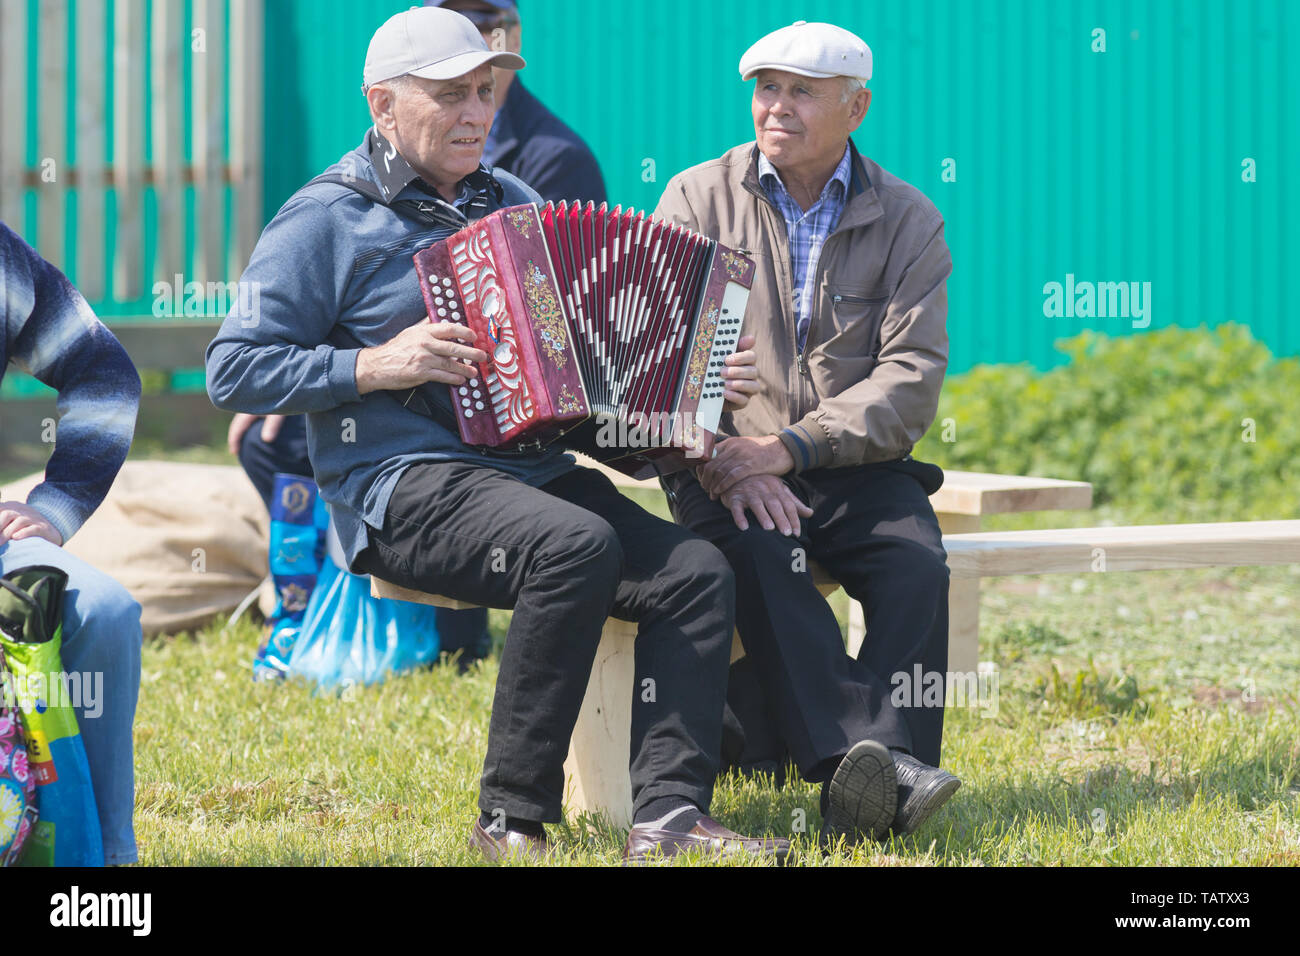 RUSSIA, Nikolskoe village, Republic of Tatarstan 25-05-2019: A group of old men sitting on the bench. One of them playing accordion. Mid shot Stock Photo